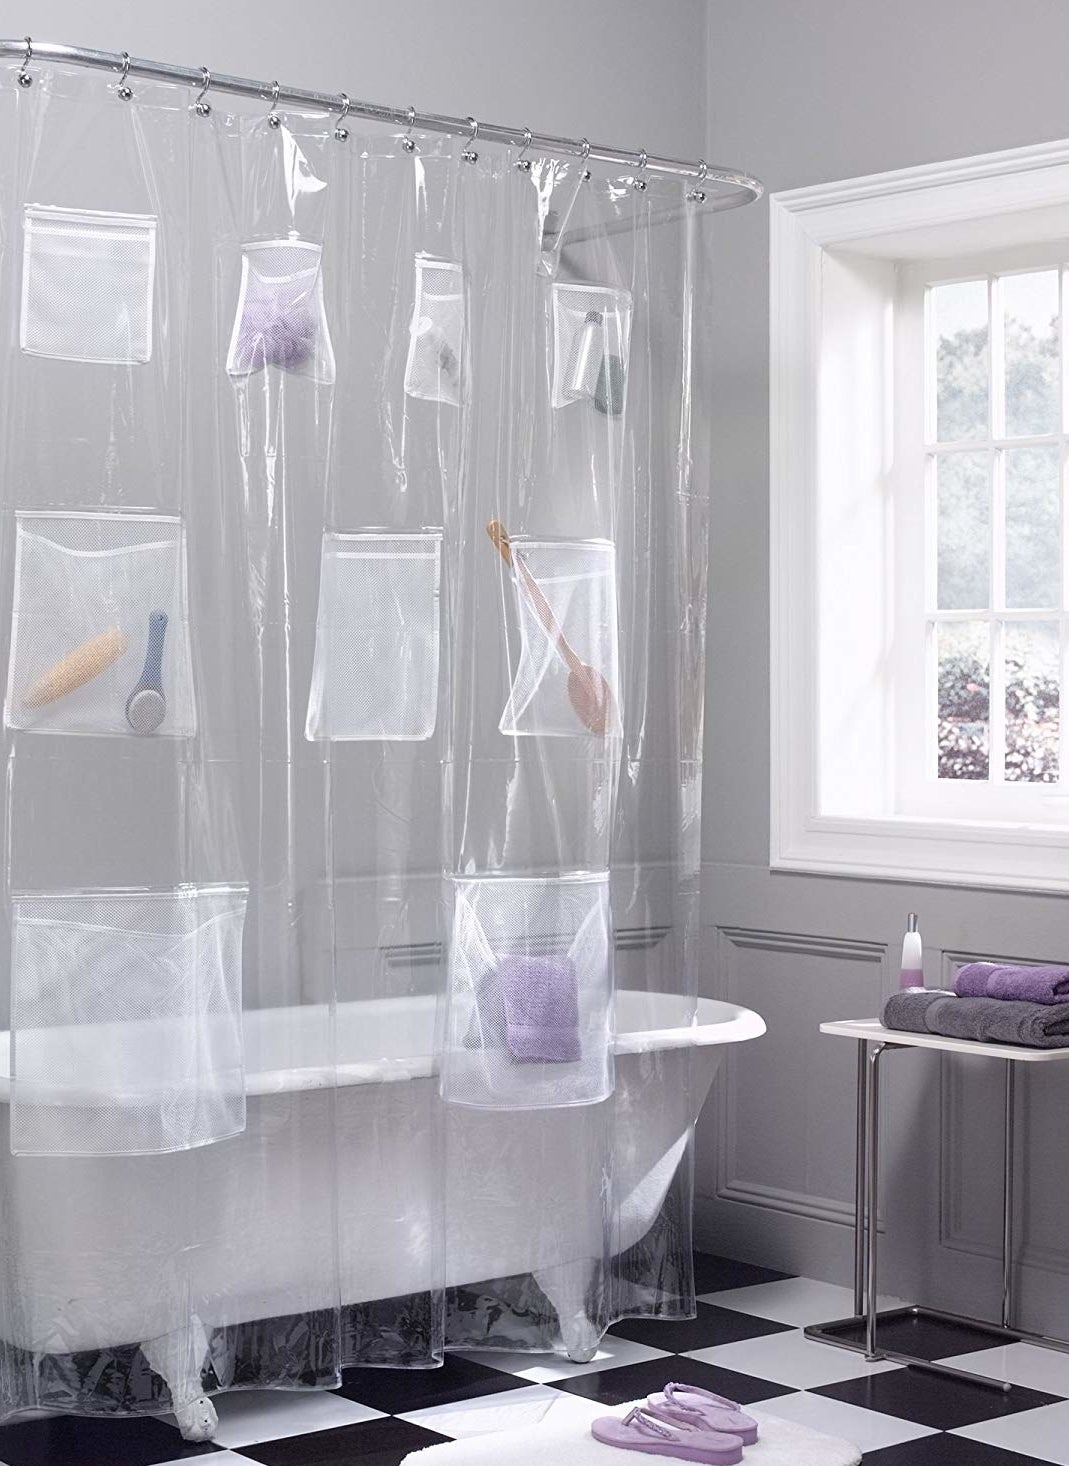 The shower curtain with a variety of shower items inside its many pockets